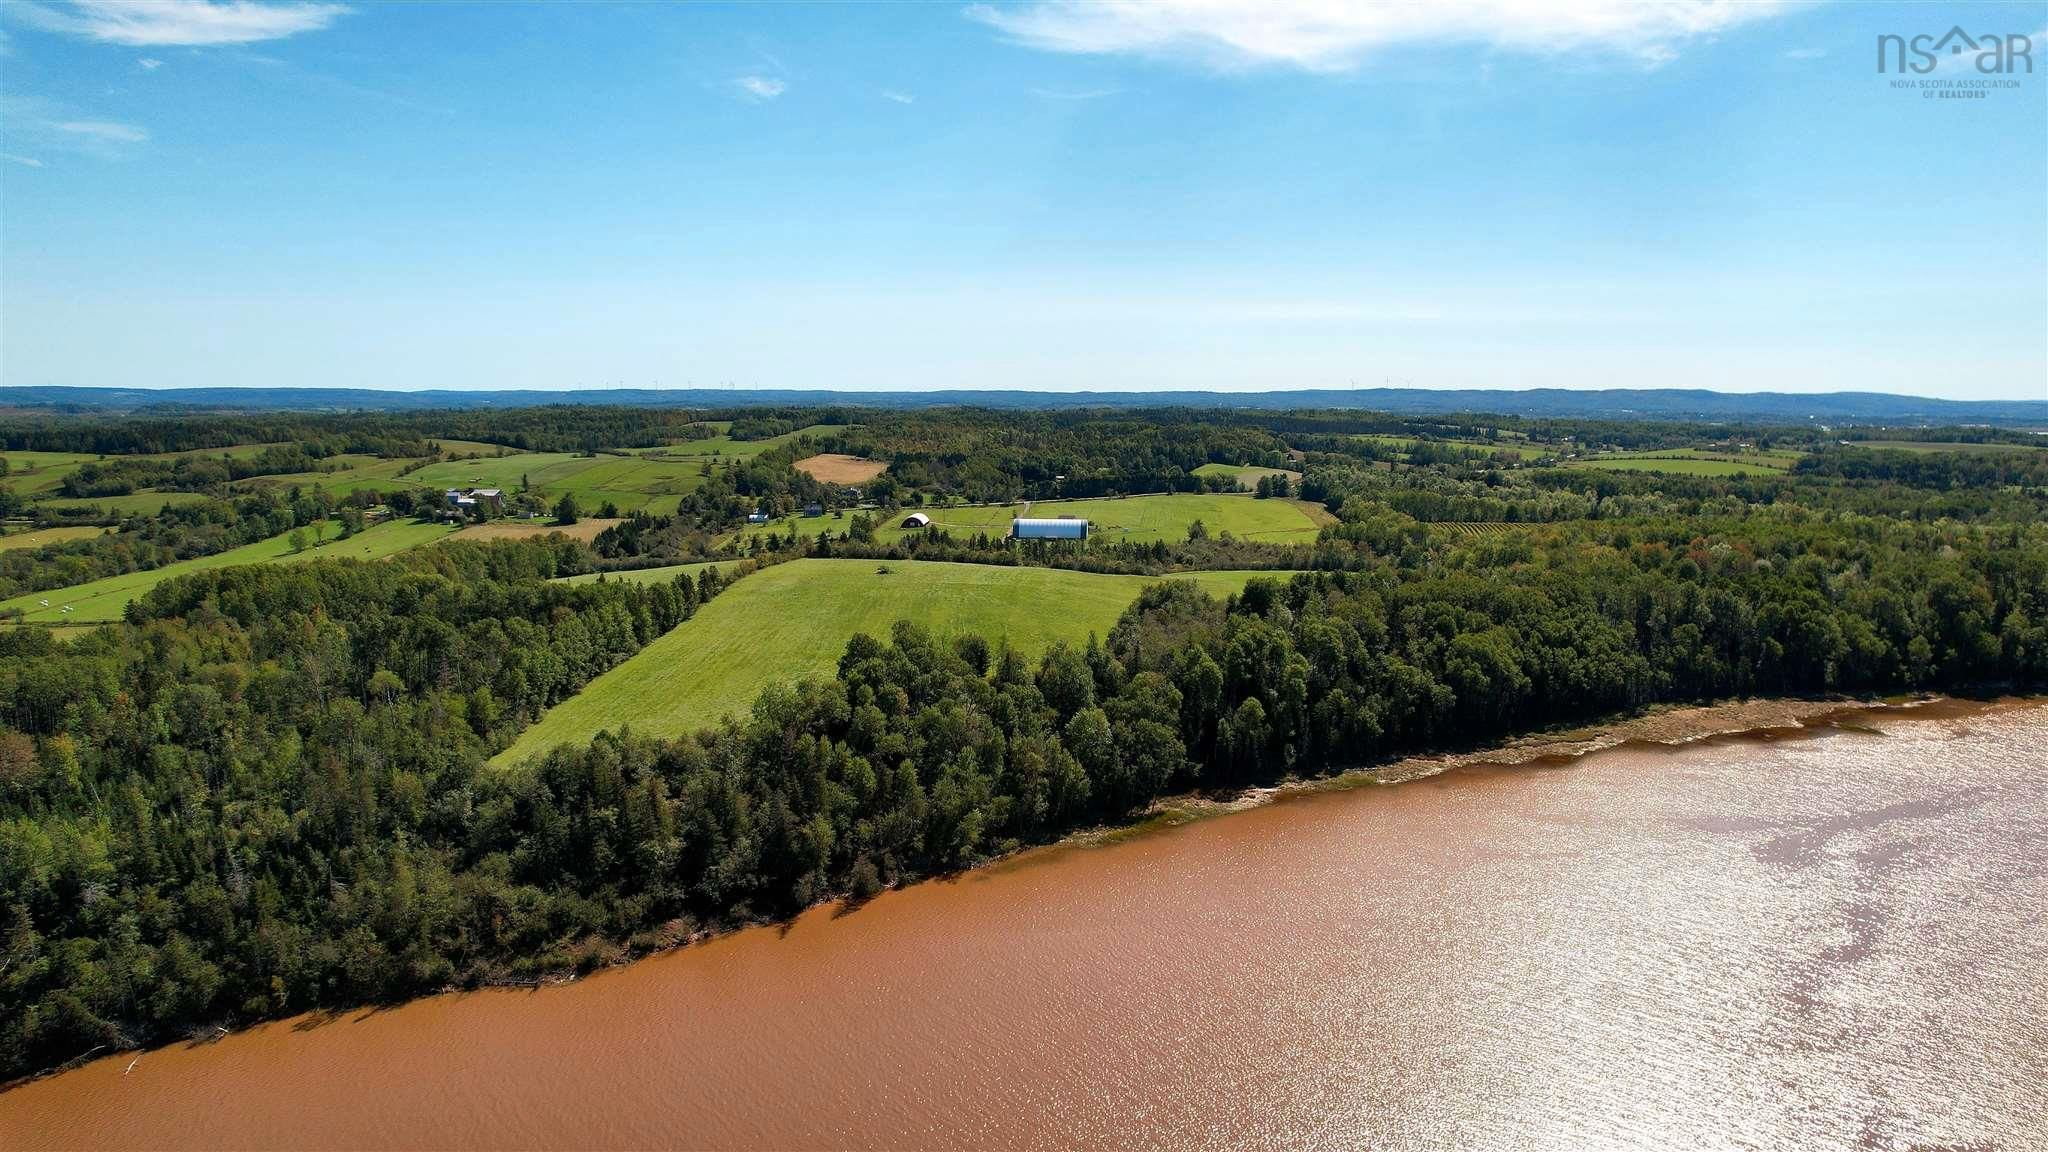 Main Photo: 697 Belmont Road in Belmont: 403-Hants County Residential for sale (Annapolis Valley)  : MLS®# 202120785